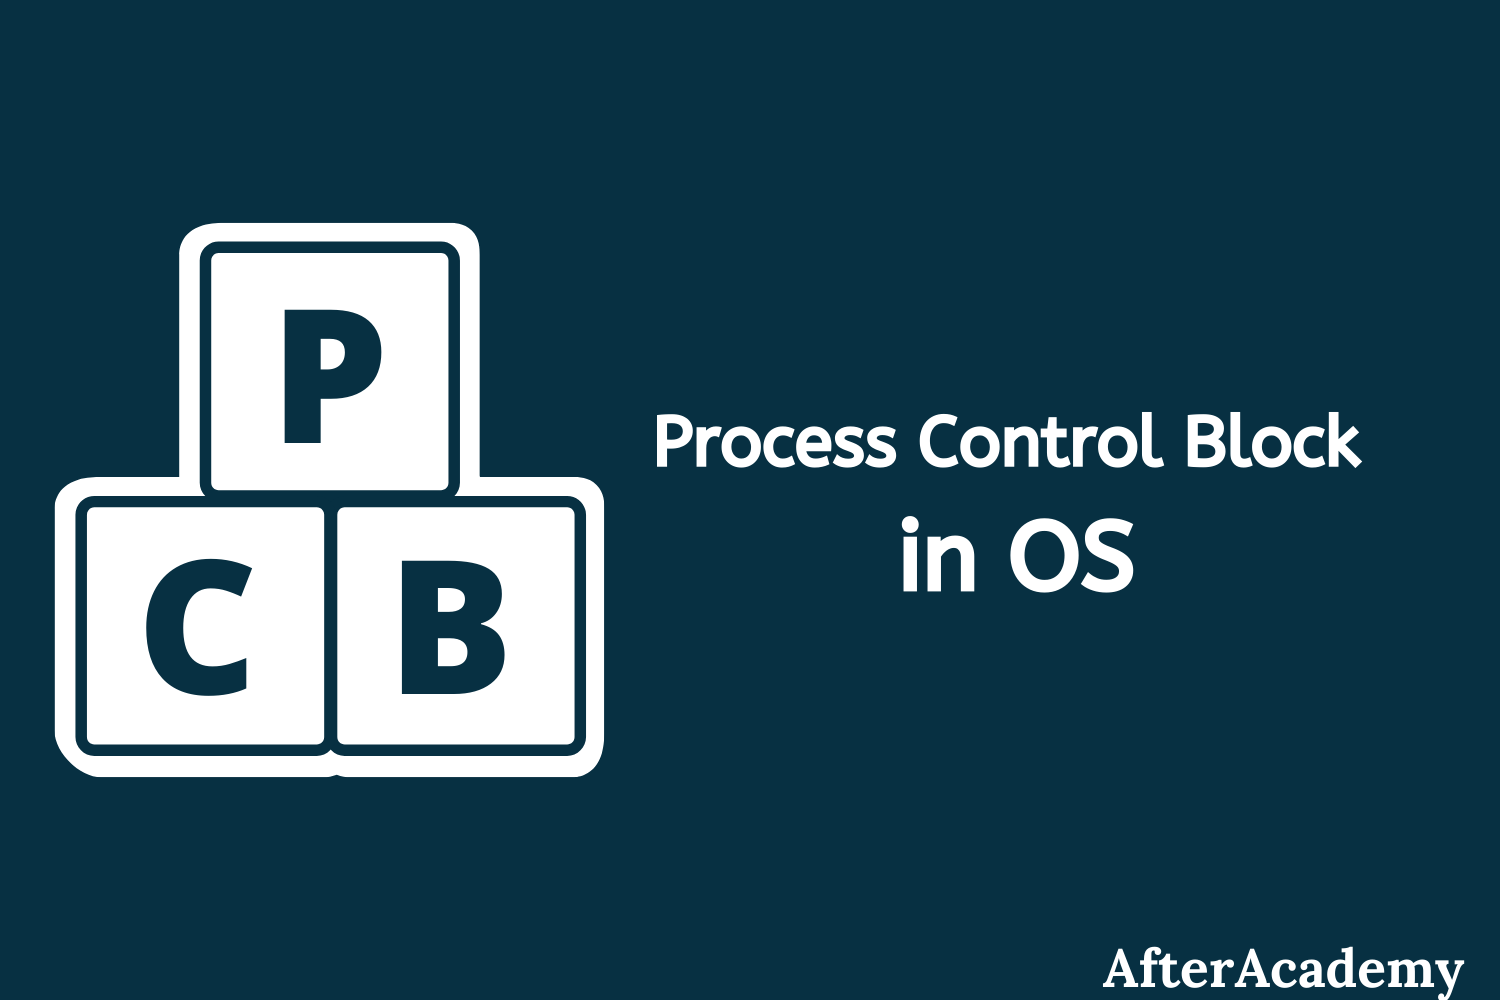 Process Control Block in Operating System